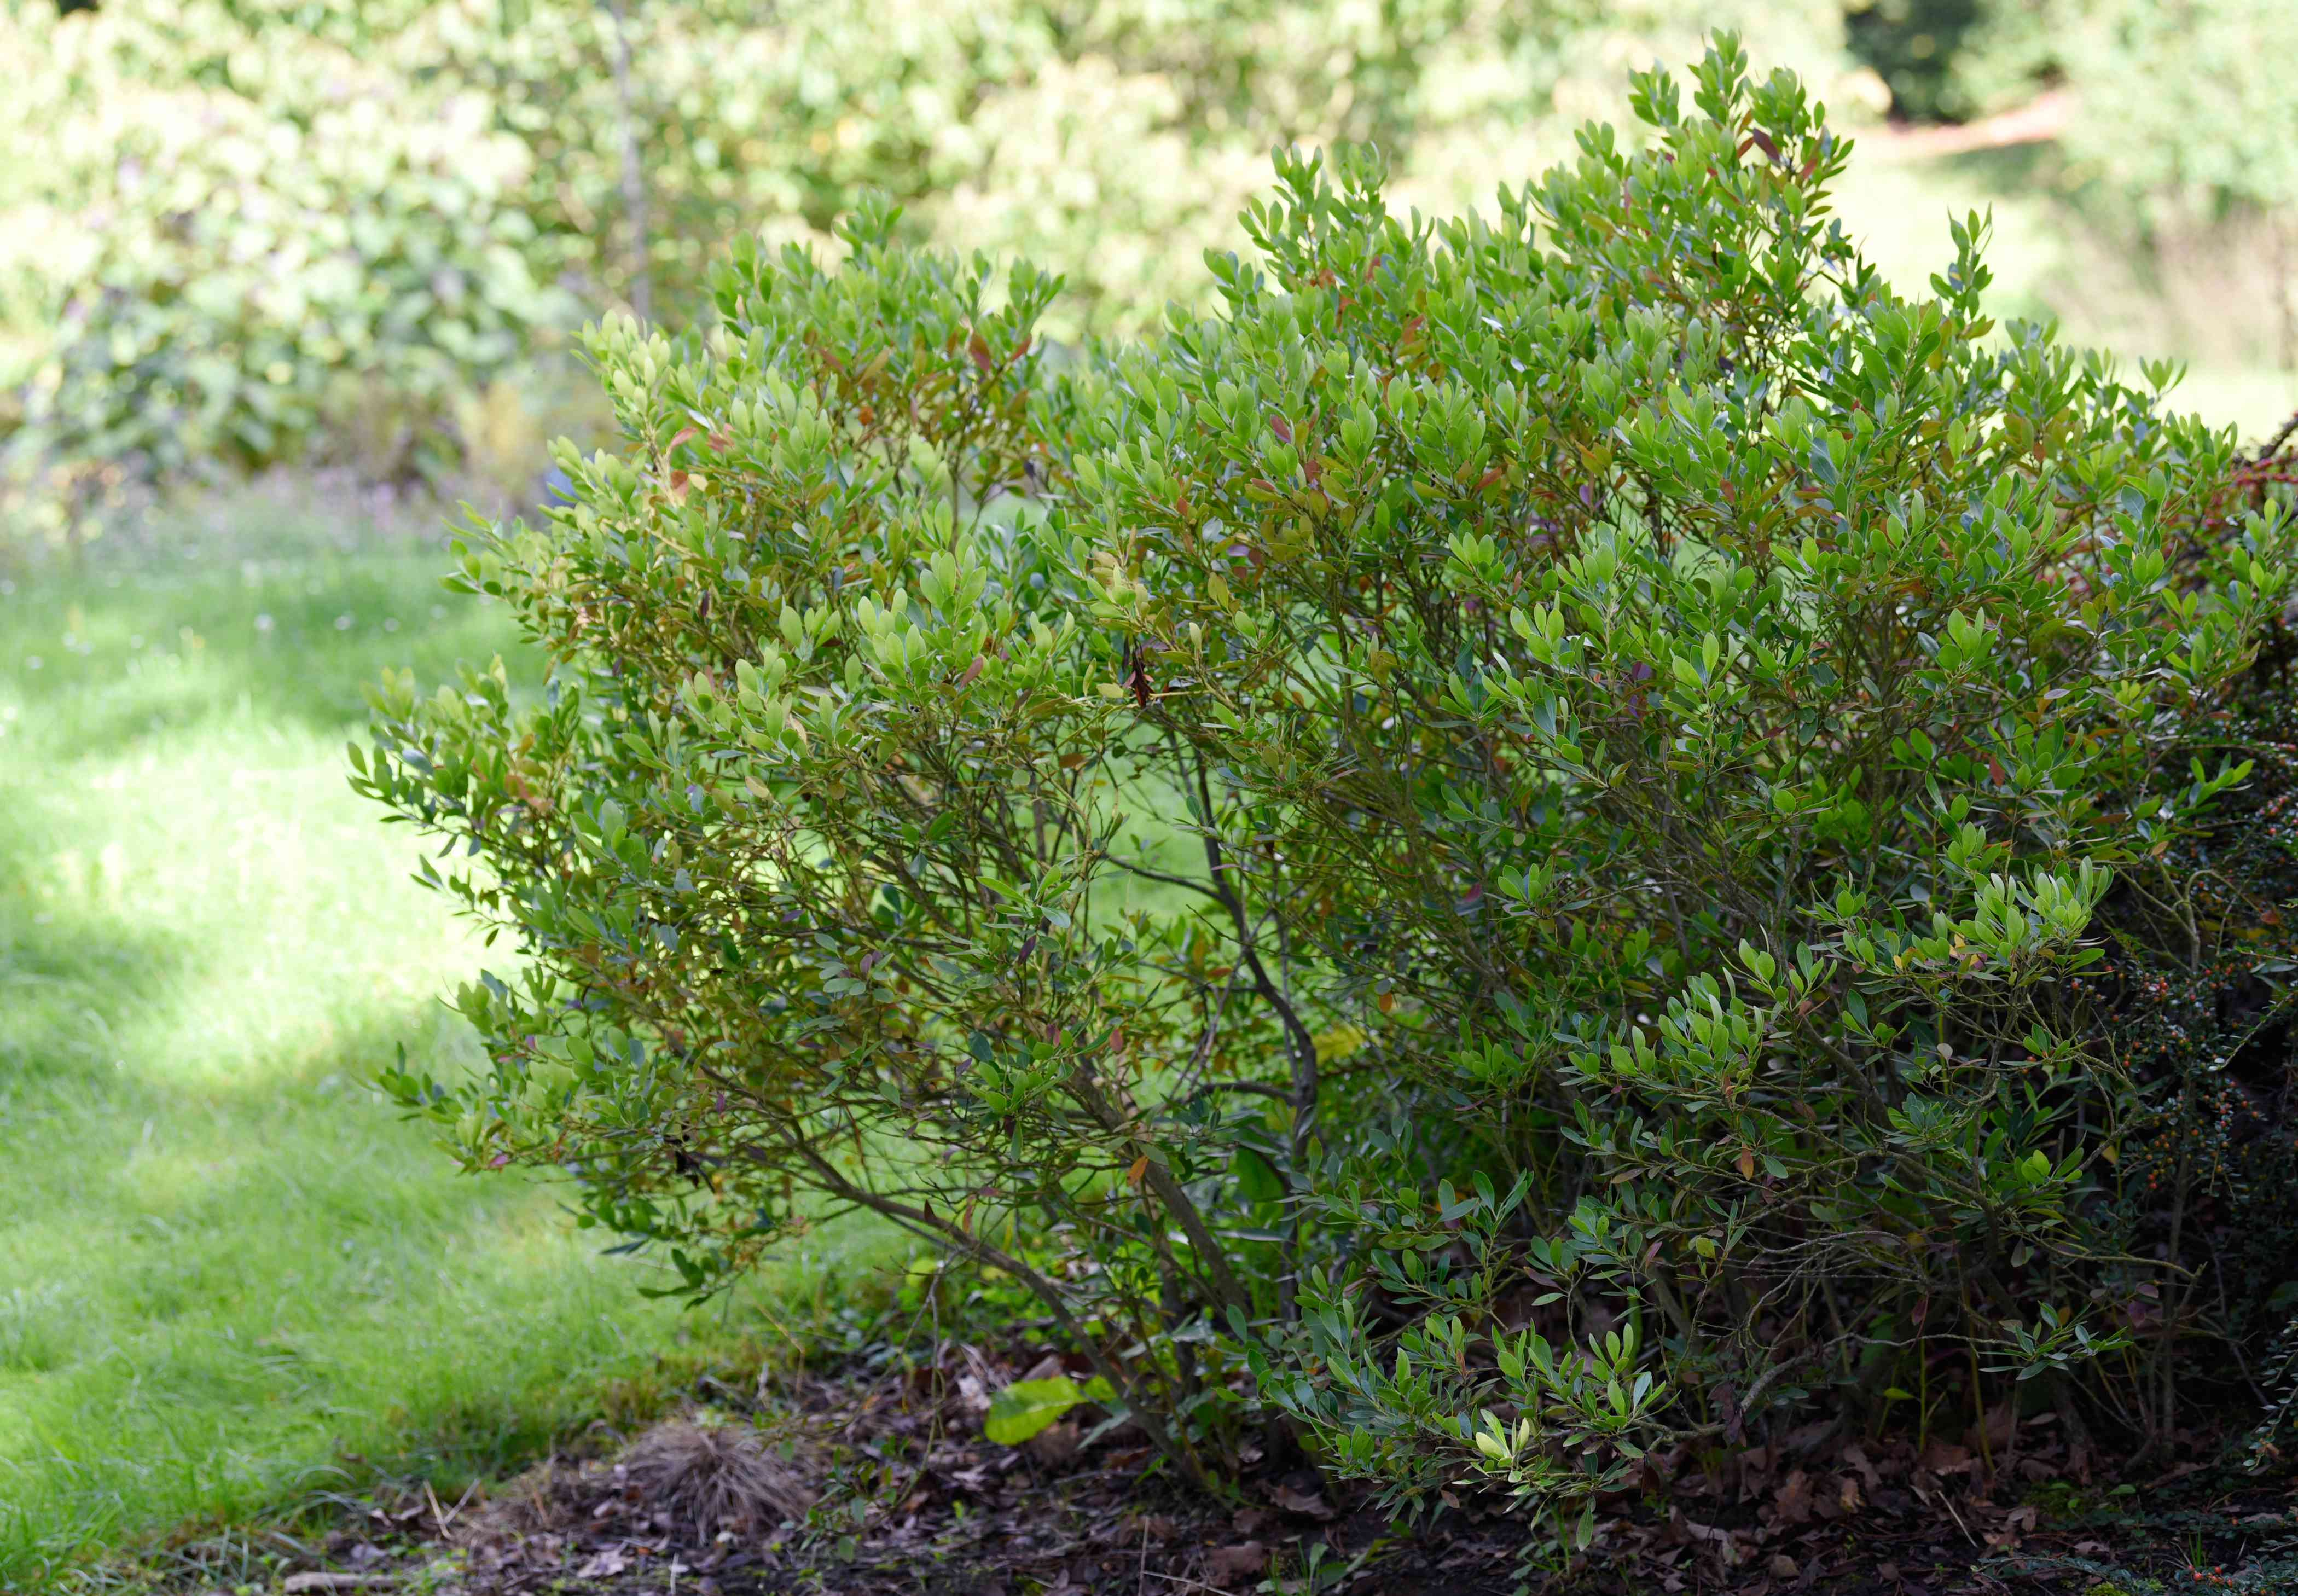 Inkberry holly shrub with broad upright branches near lawn